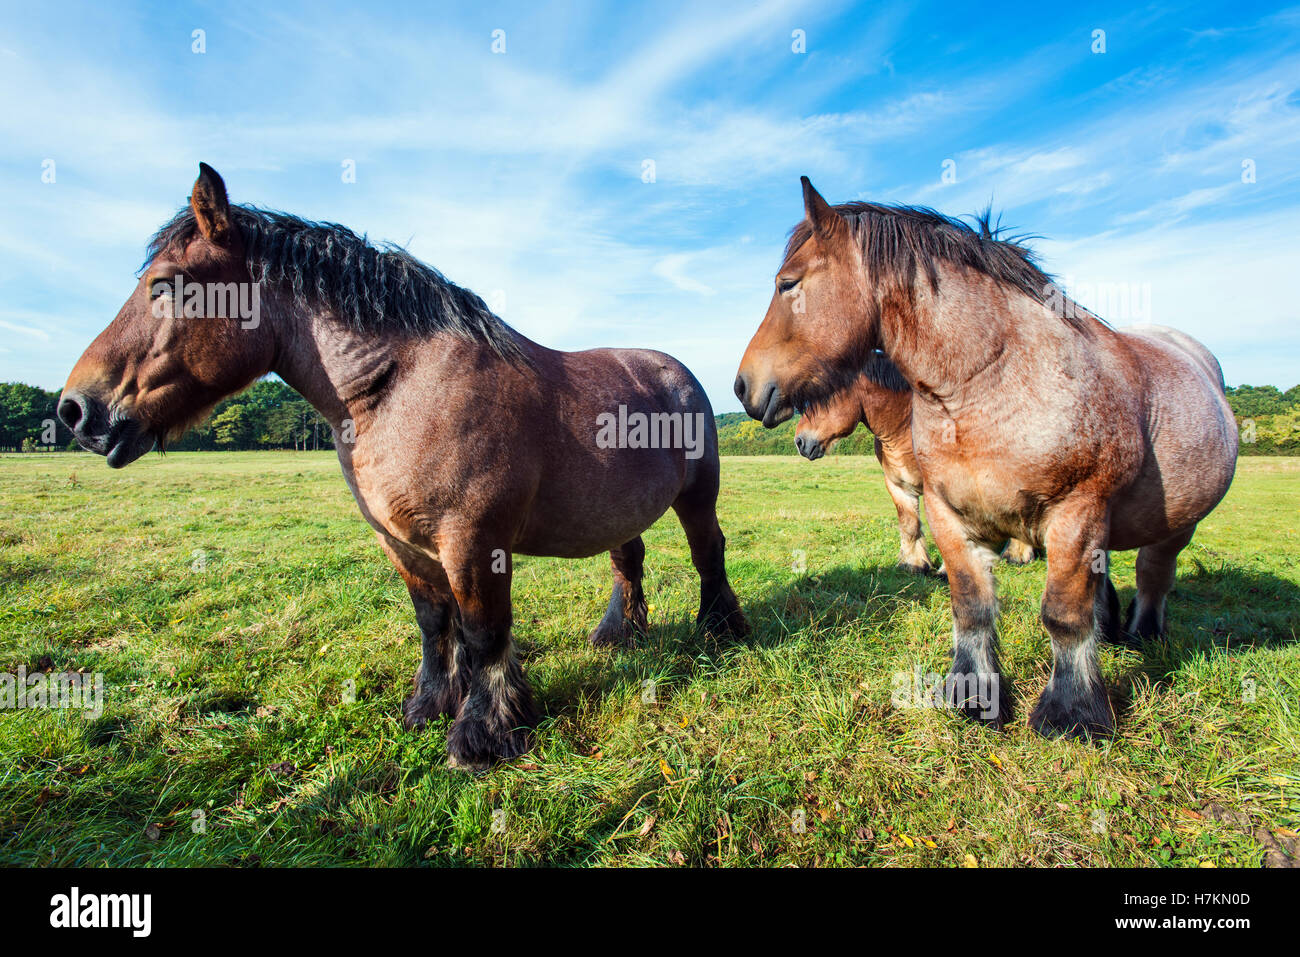 The Ardennes or Ardennais horses in a field in the Ardennes region of Belgium. - Stock Image